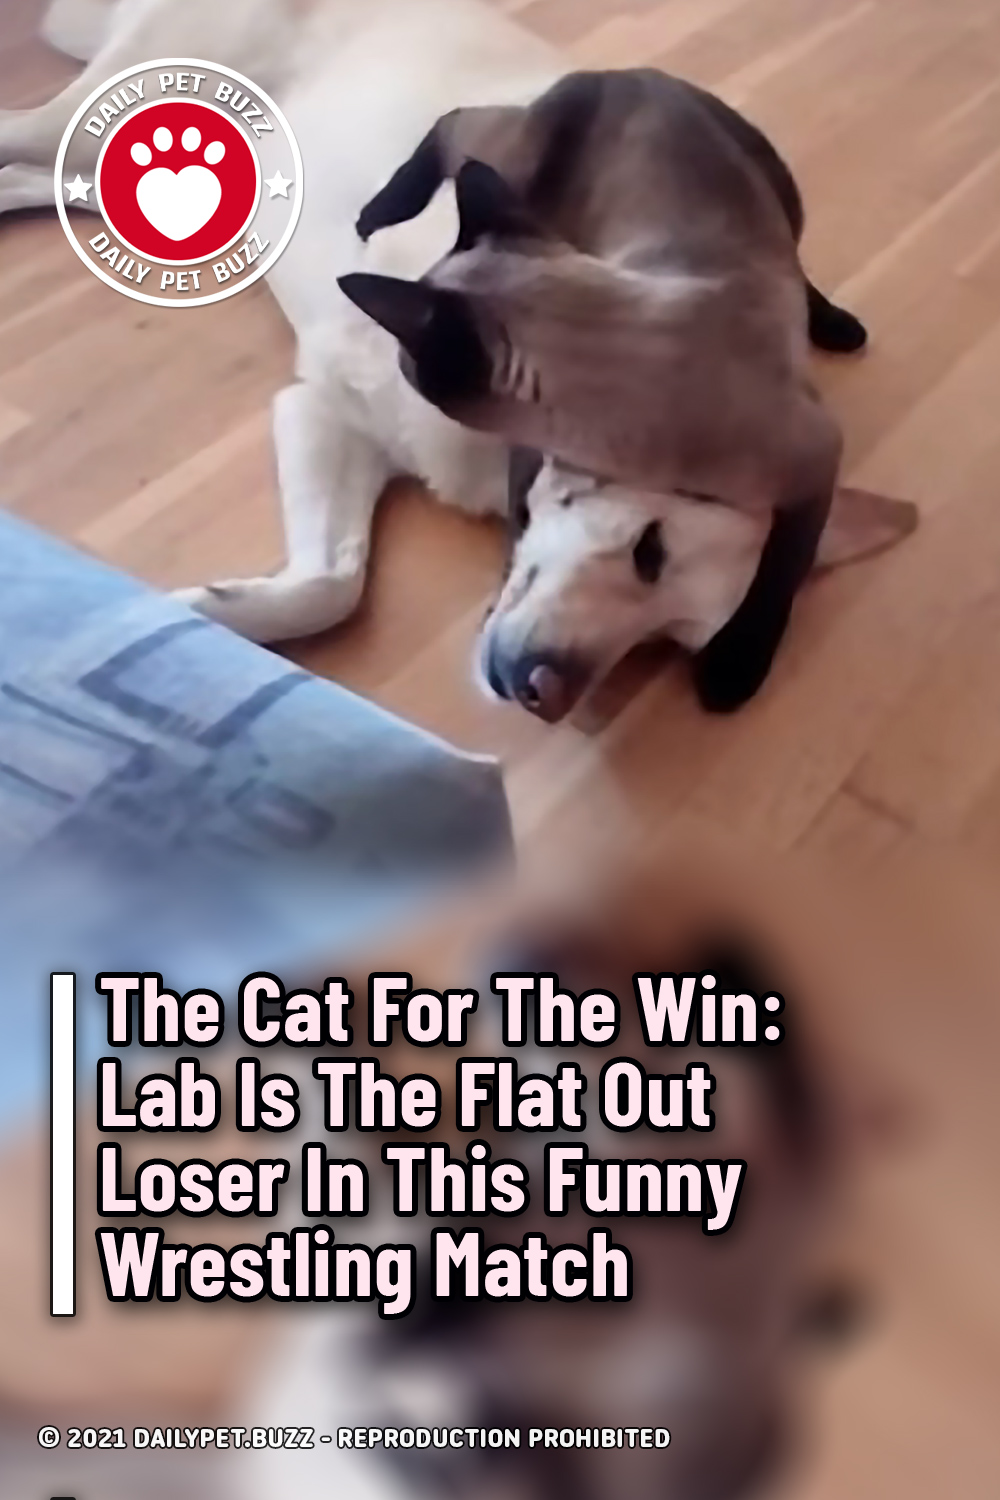 The Cat For The Win: Lab Is The Flat Out Loser In This Funny Wrestling Match